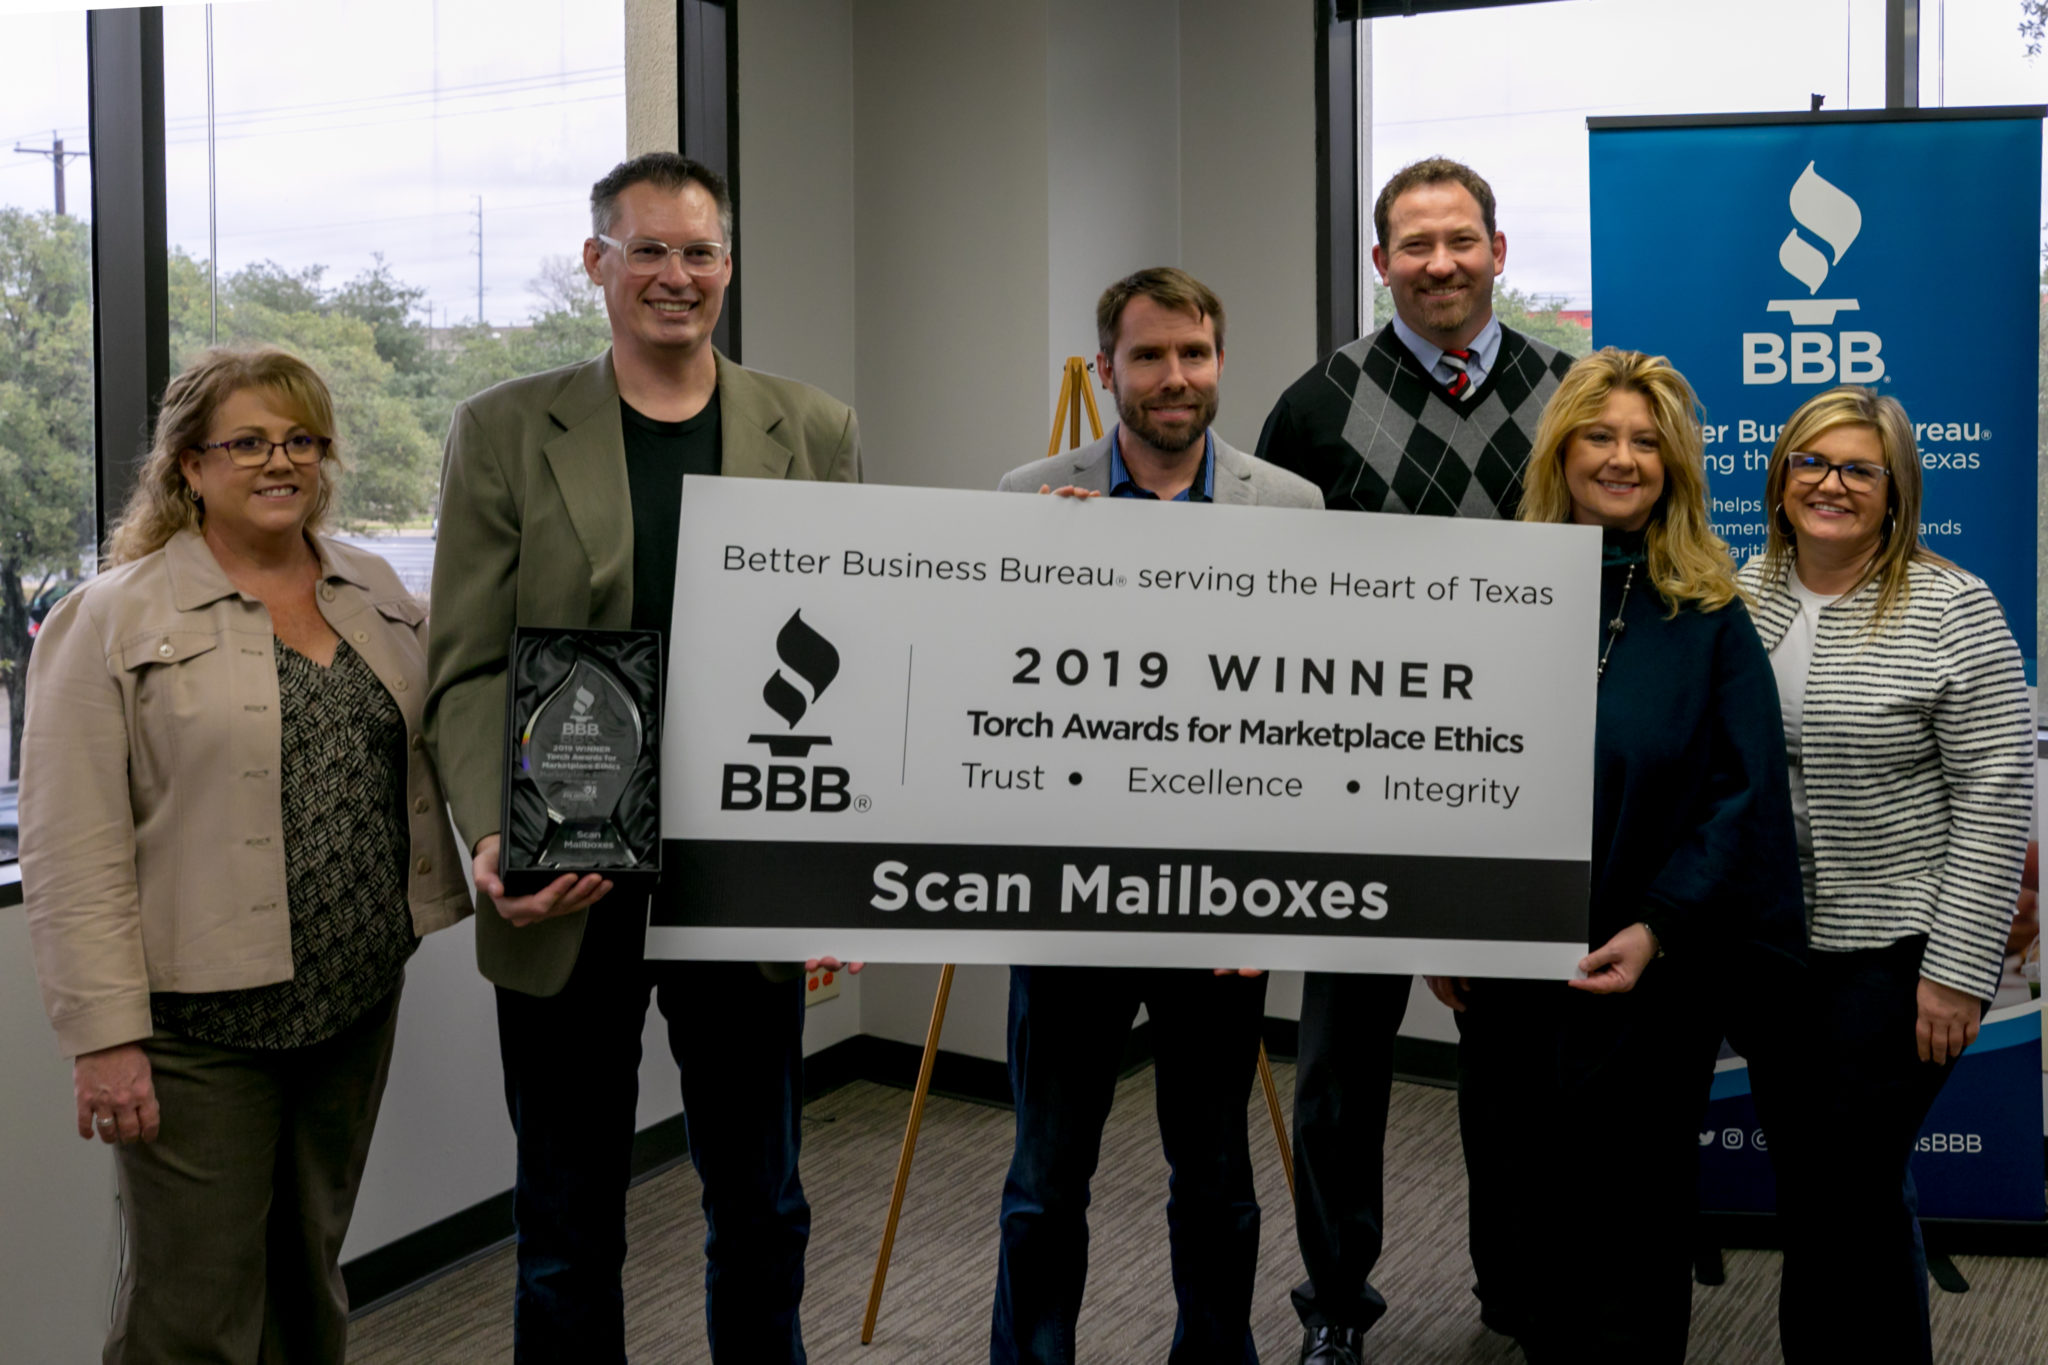 Scan Mailboxes Wins BBB 2019 Torch Awards